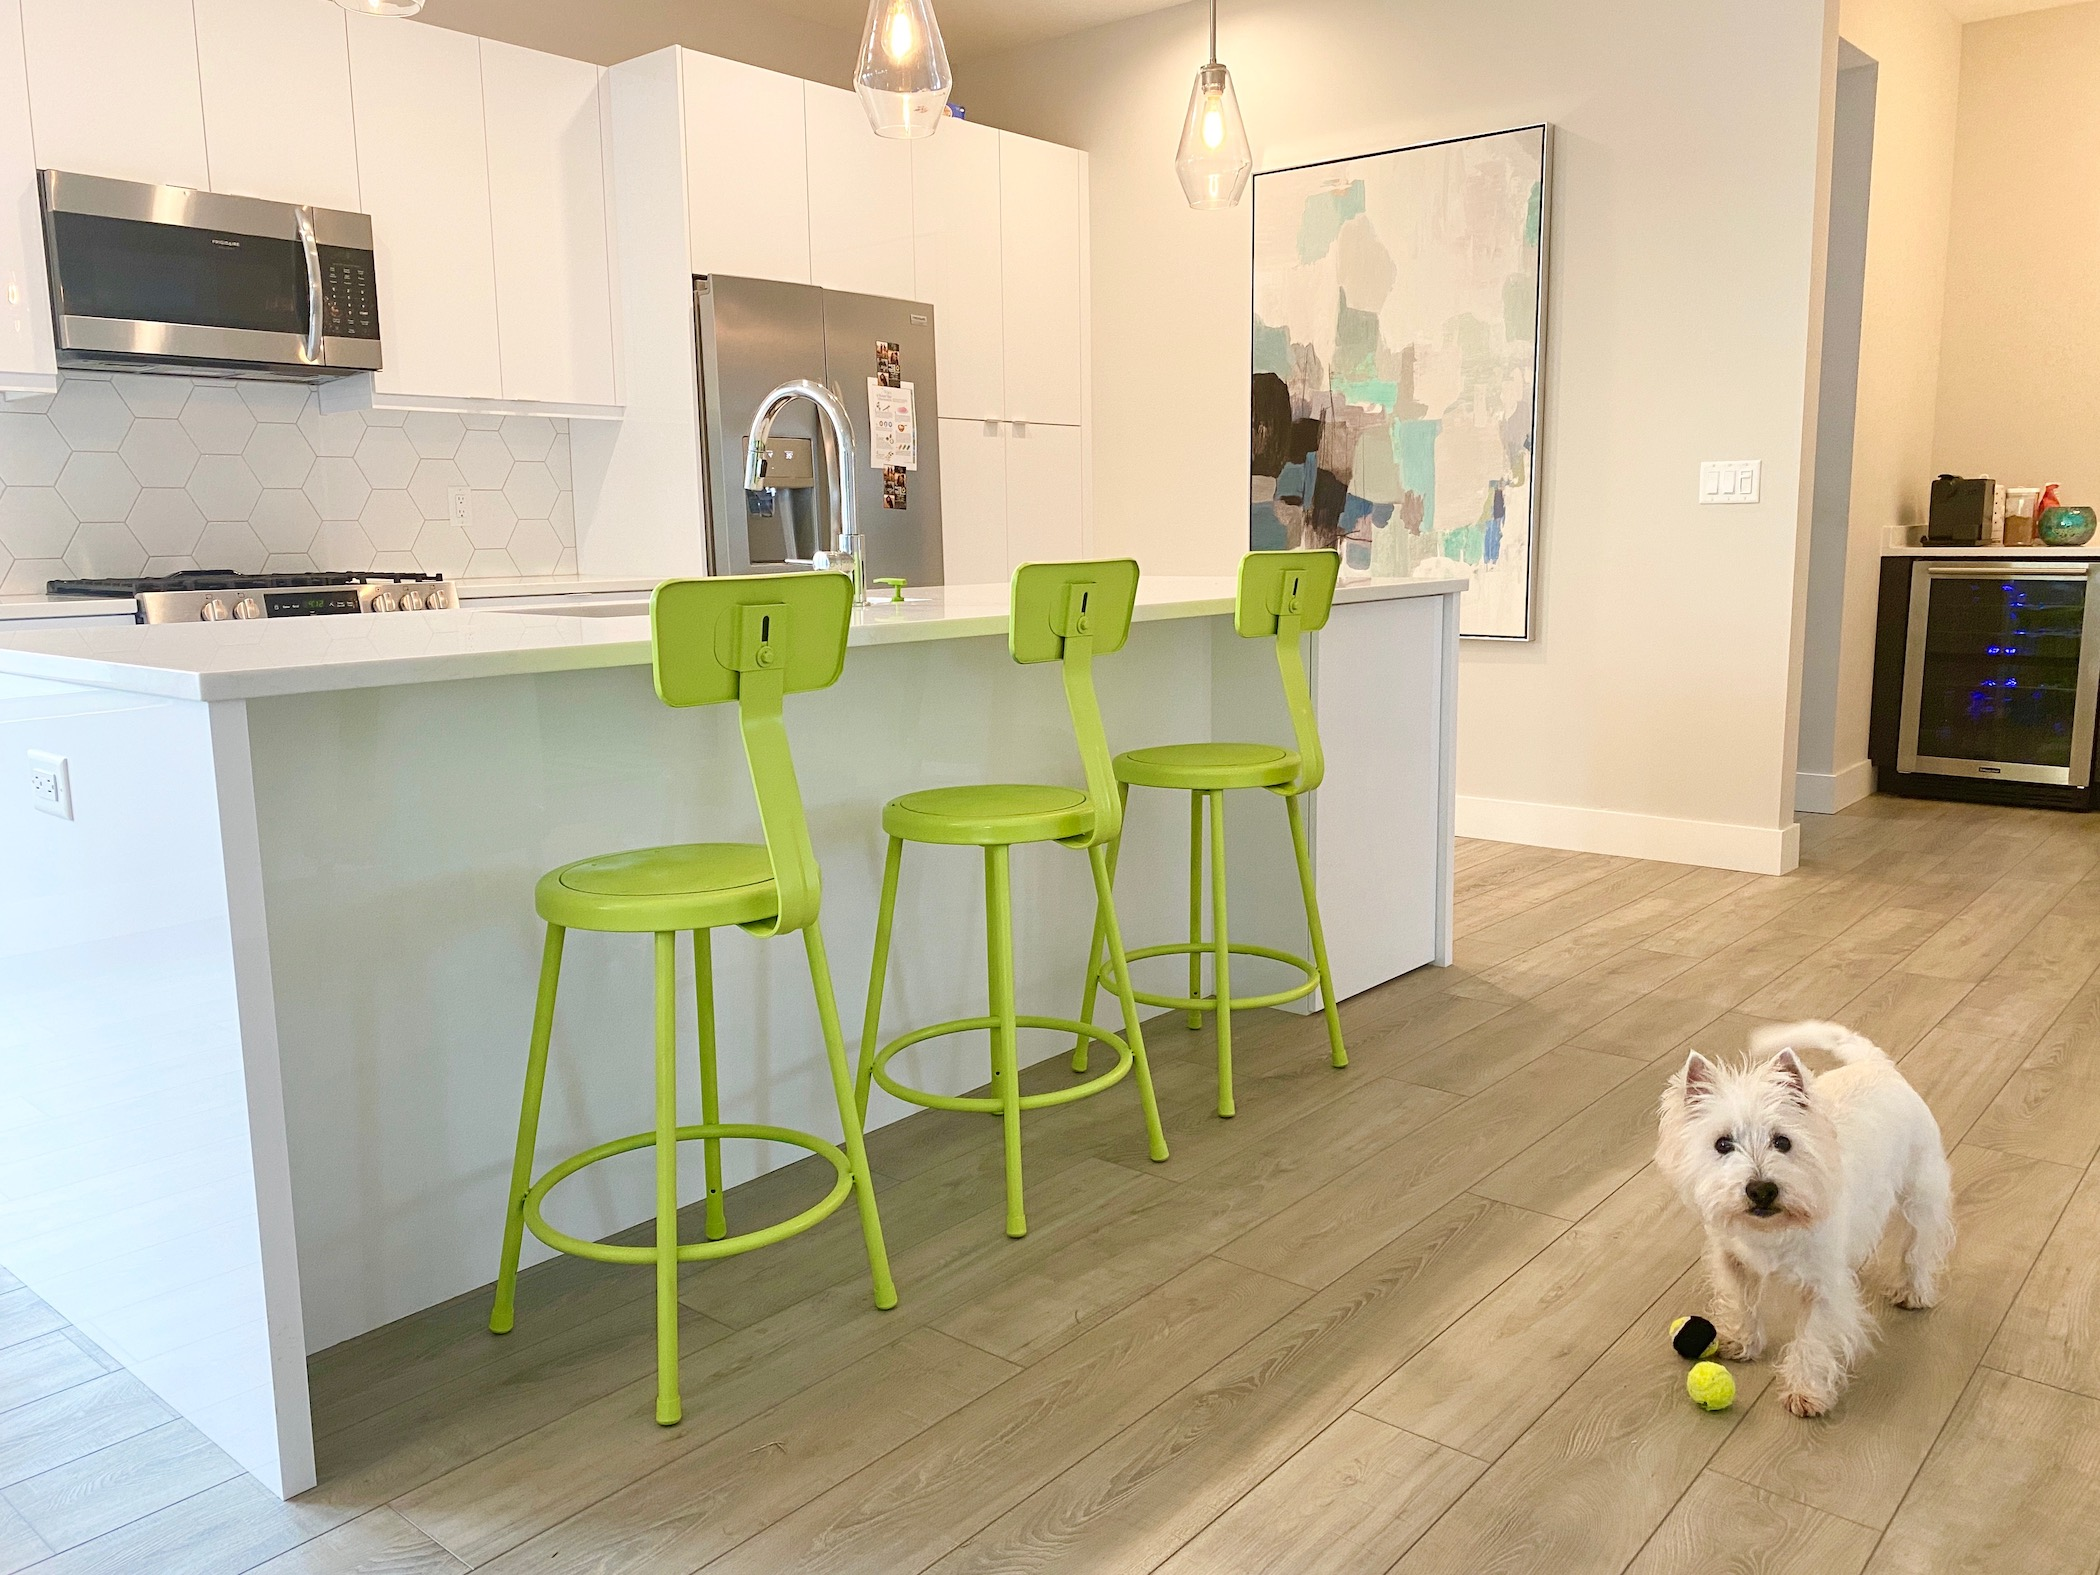 Also, the Chartreuse Color on the Stools makes the room happier. The counter and cabinets are white.